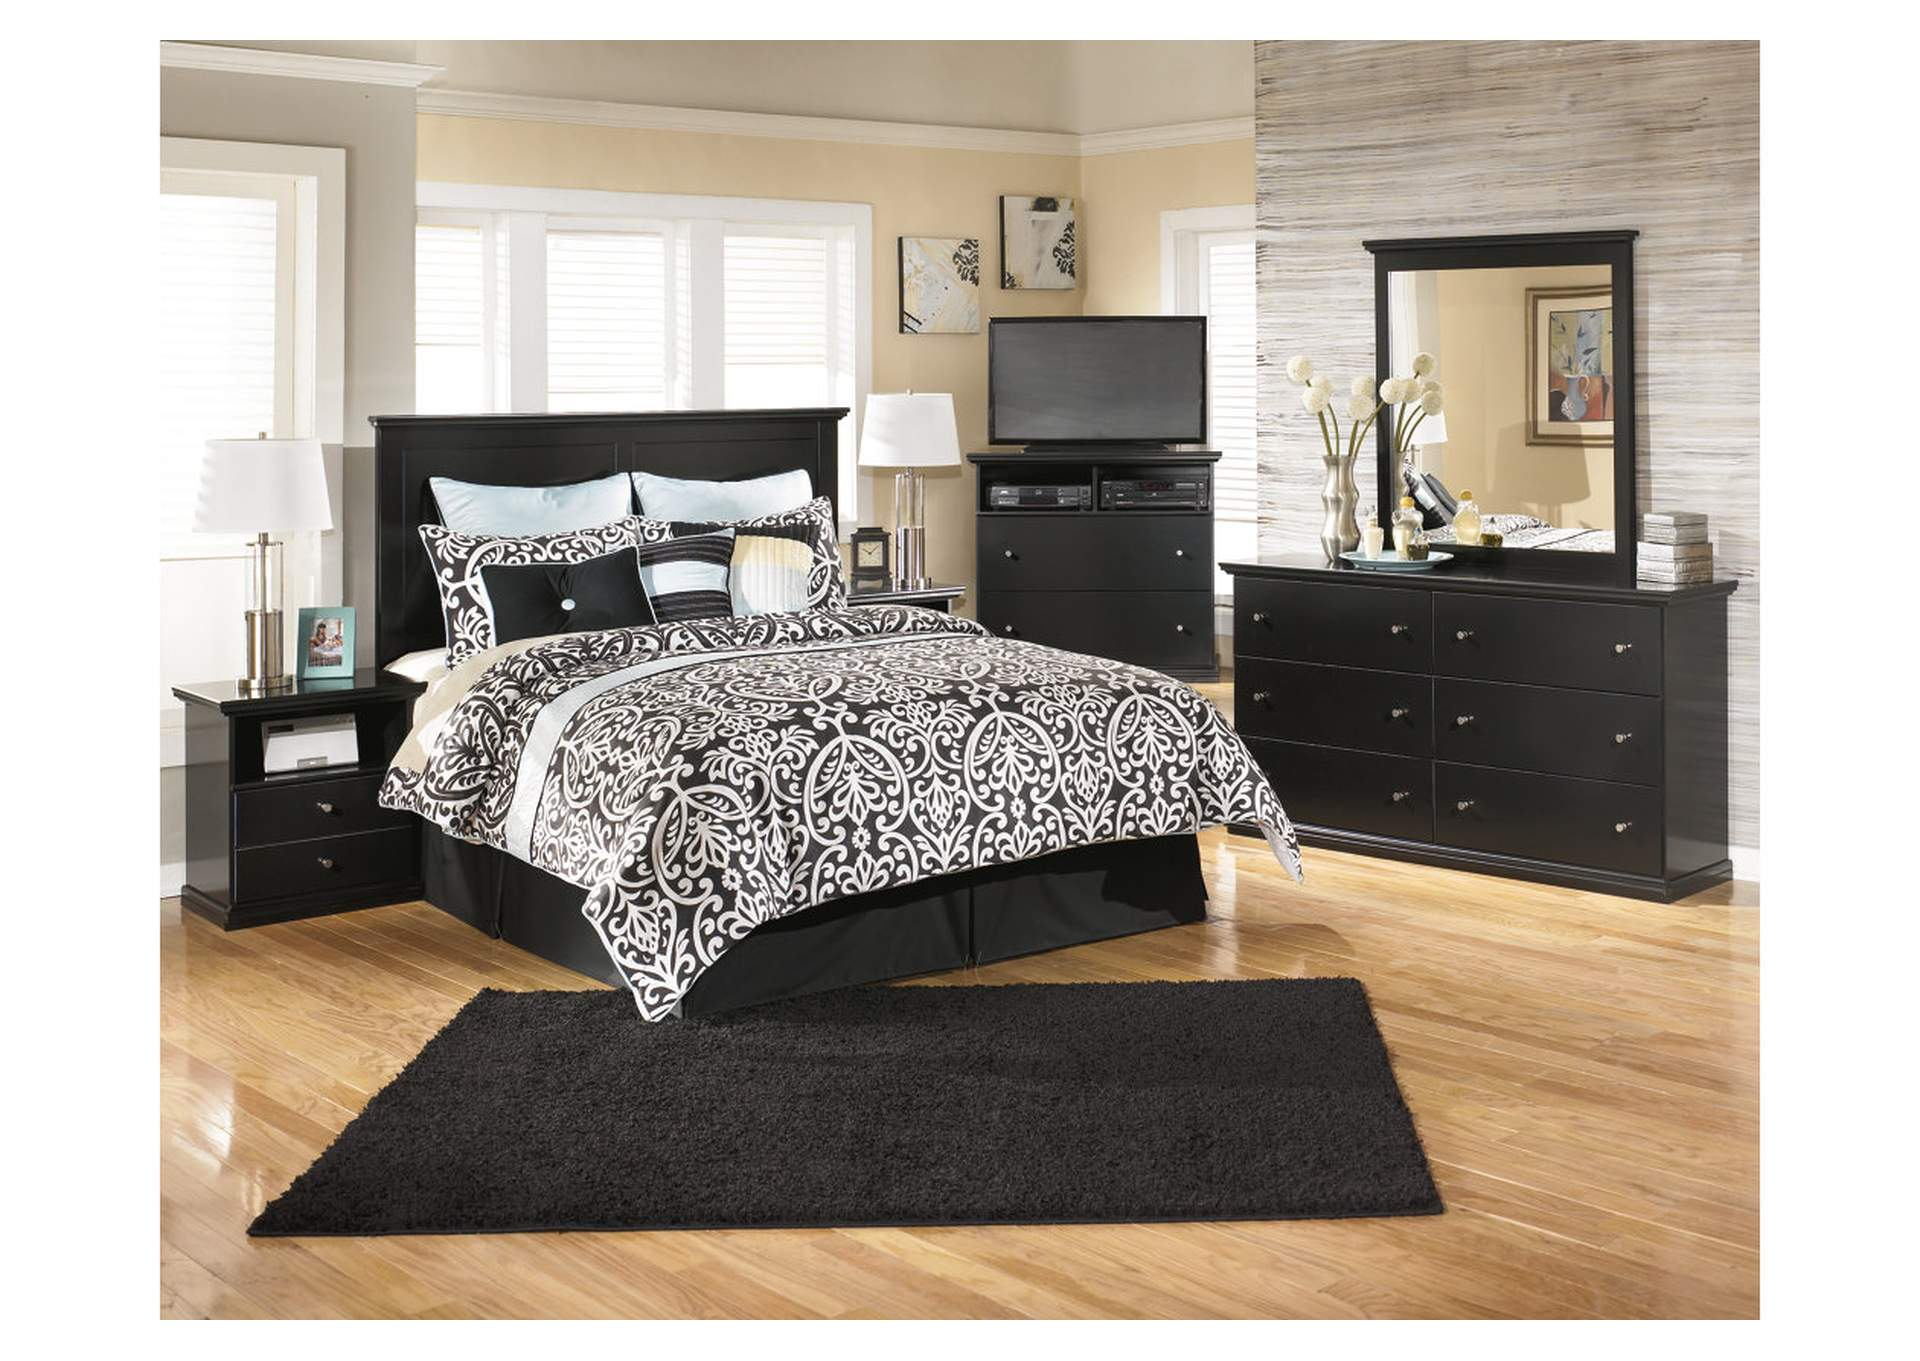 Maribel Black Queen/Full Panel Headboard w/Dresser, Mirror, Drawer Chest & Nightstand,Signature Design By Ashley